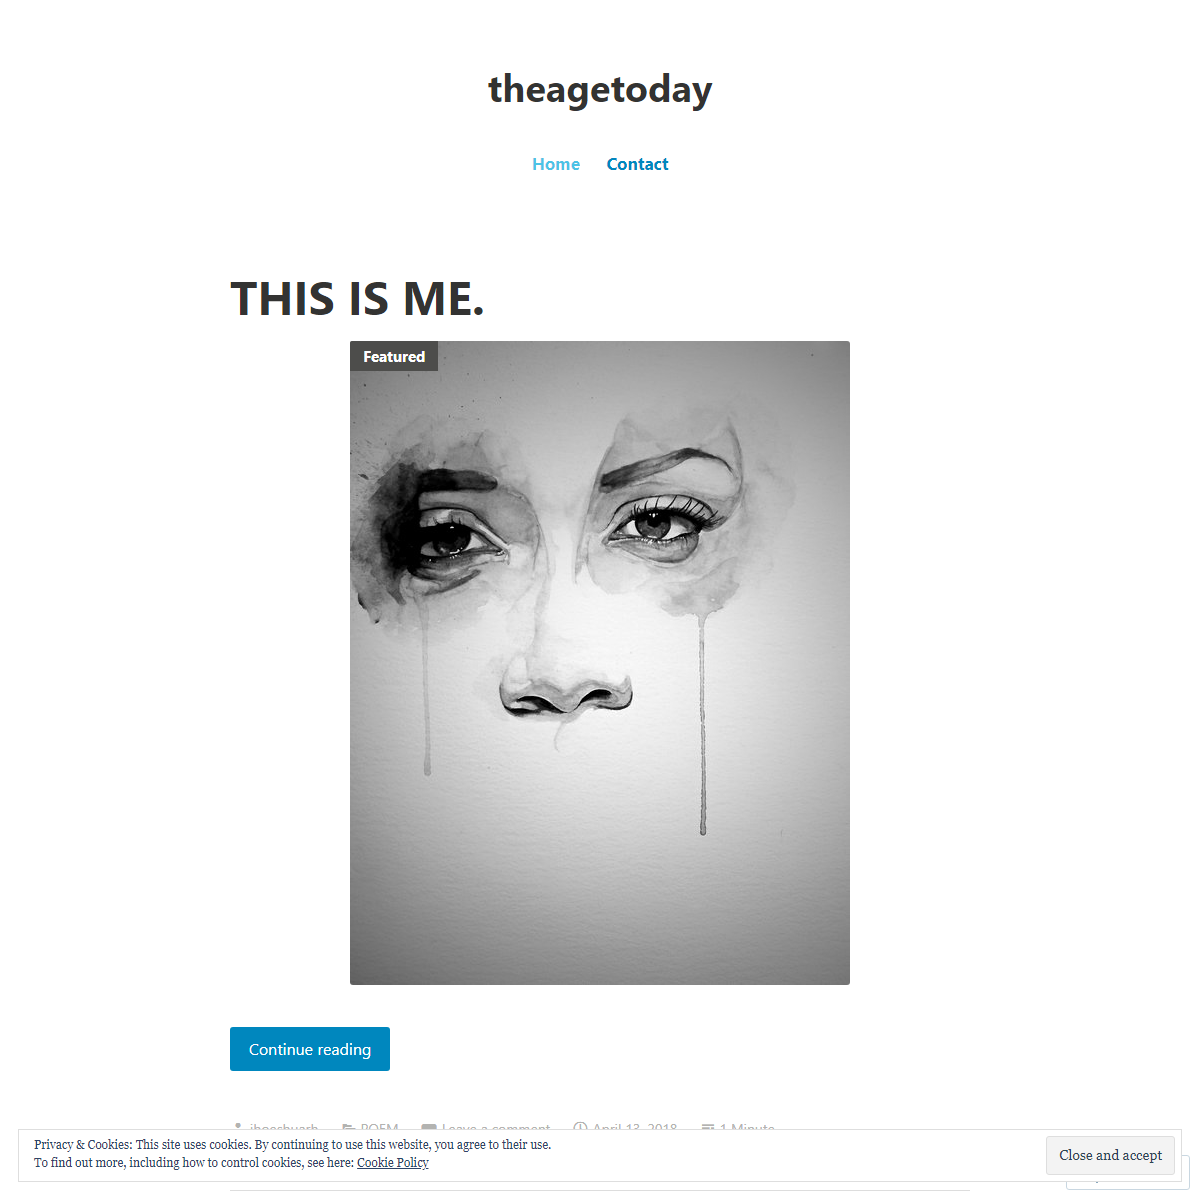 theagetoday